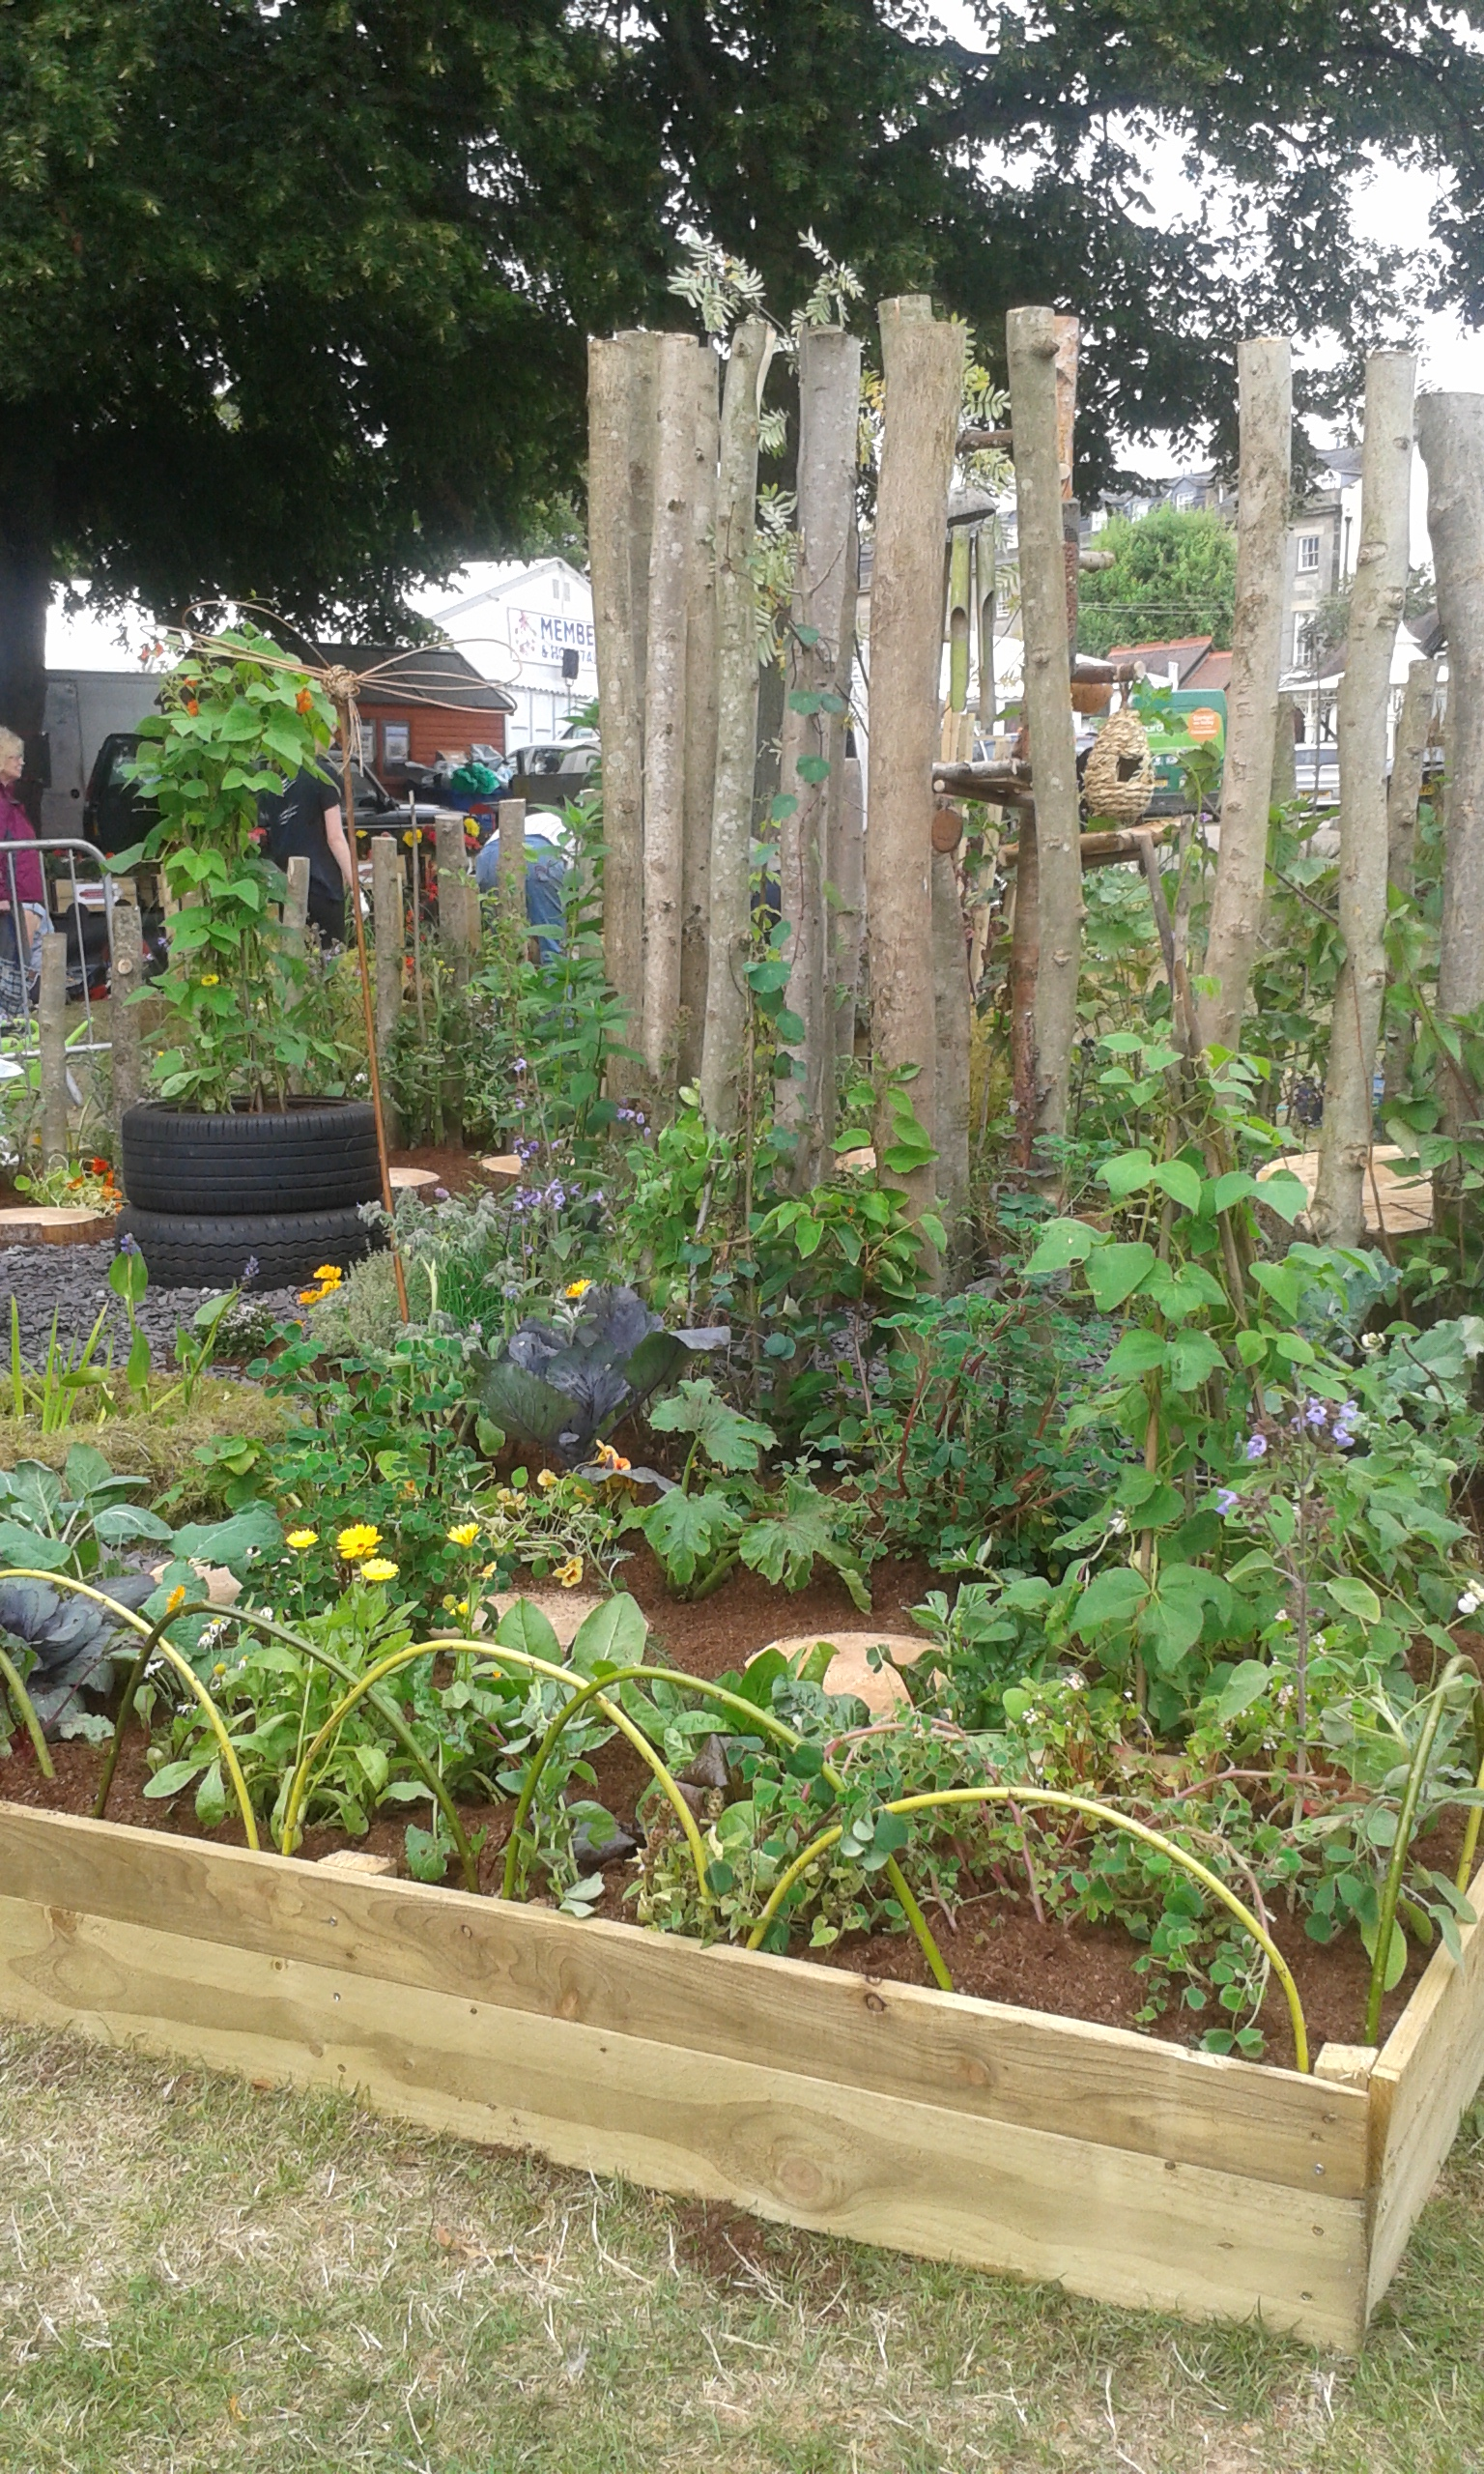 gold medal for permaculture working with nature garden anni u0027s